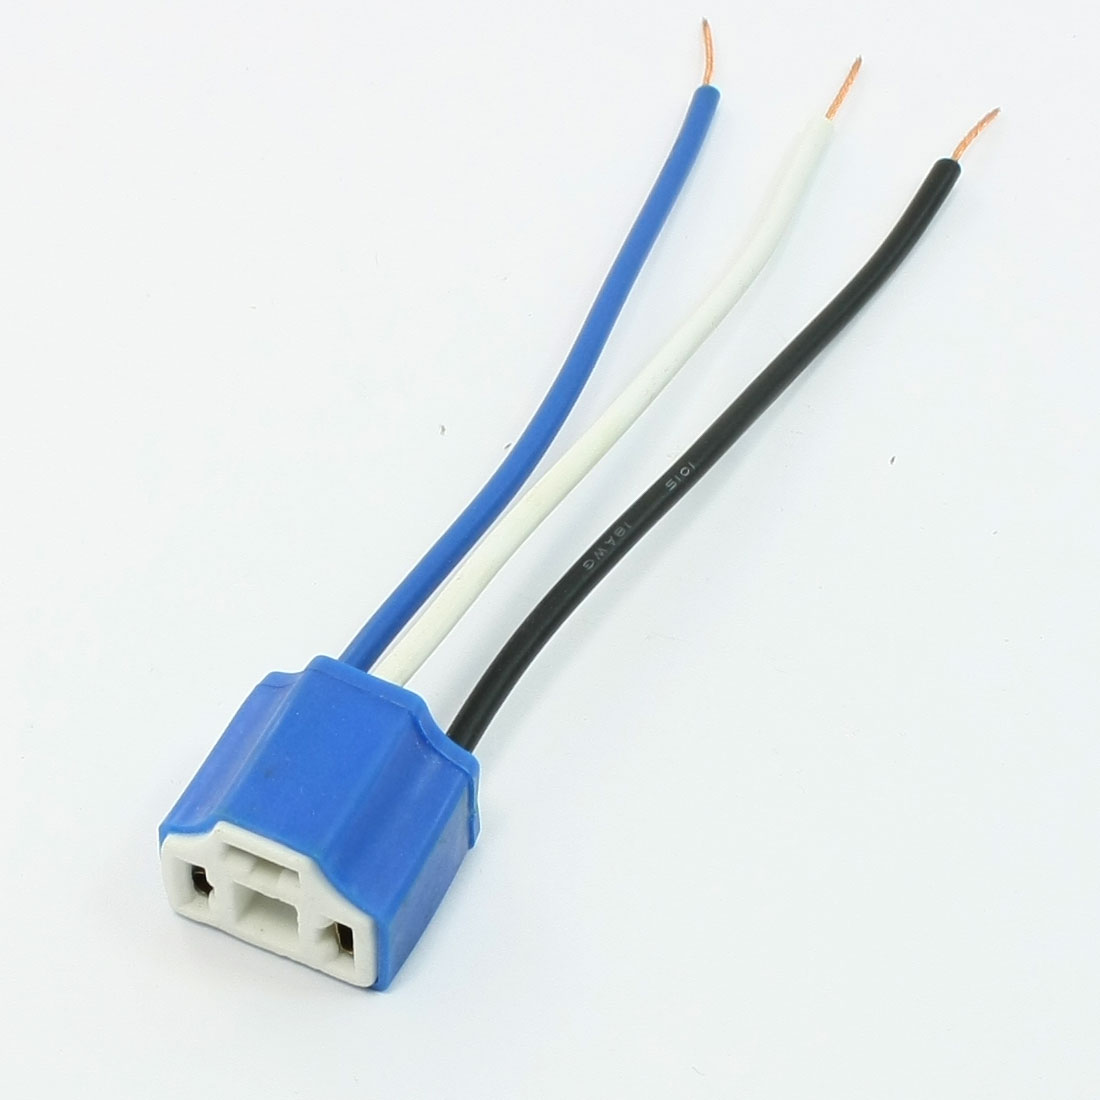 Auto Blue Rubber Coated Ceramic 3 Terminal 3 Wire H4 Light Lamp Socket 5pcs